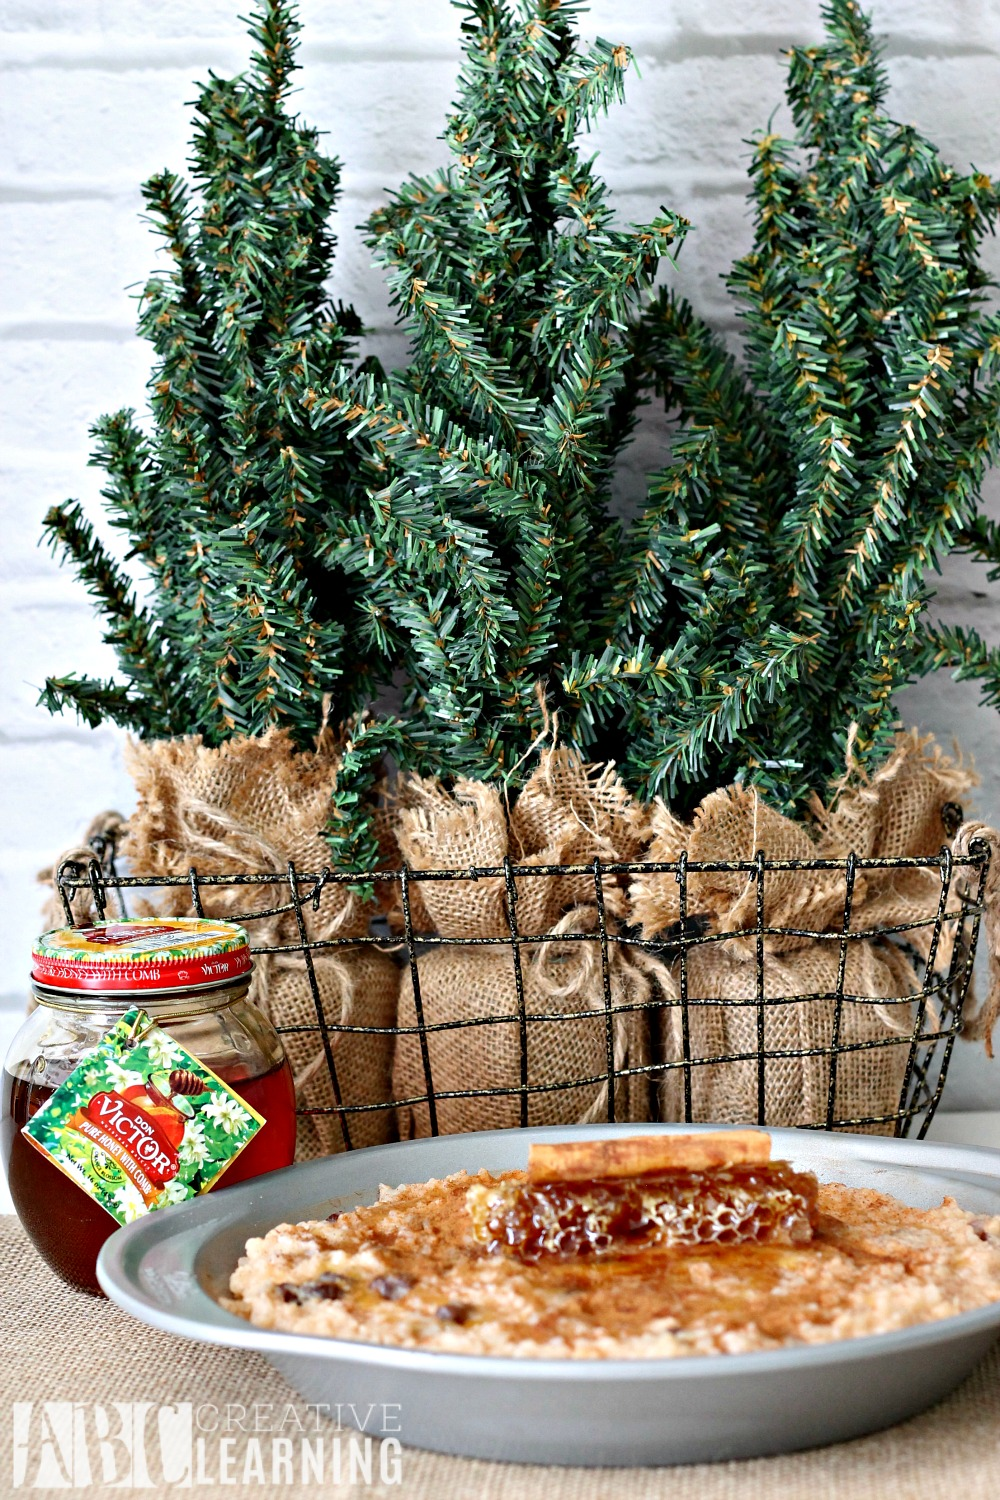 Puerto Rican Style Arroz Con Dulce Holiday Gifting pan